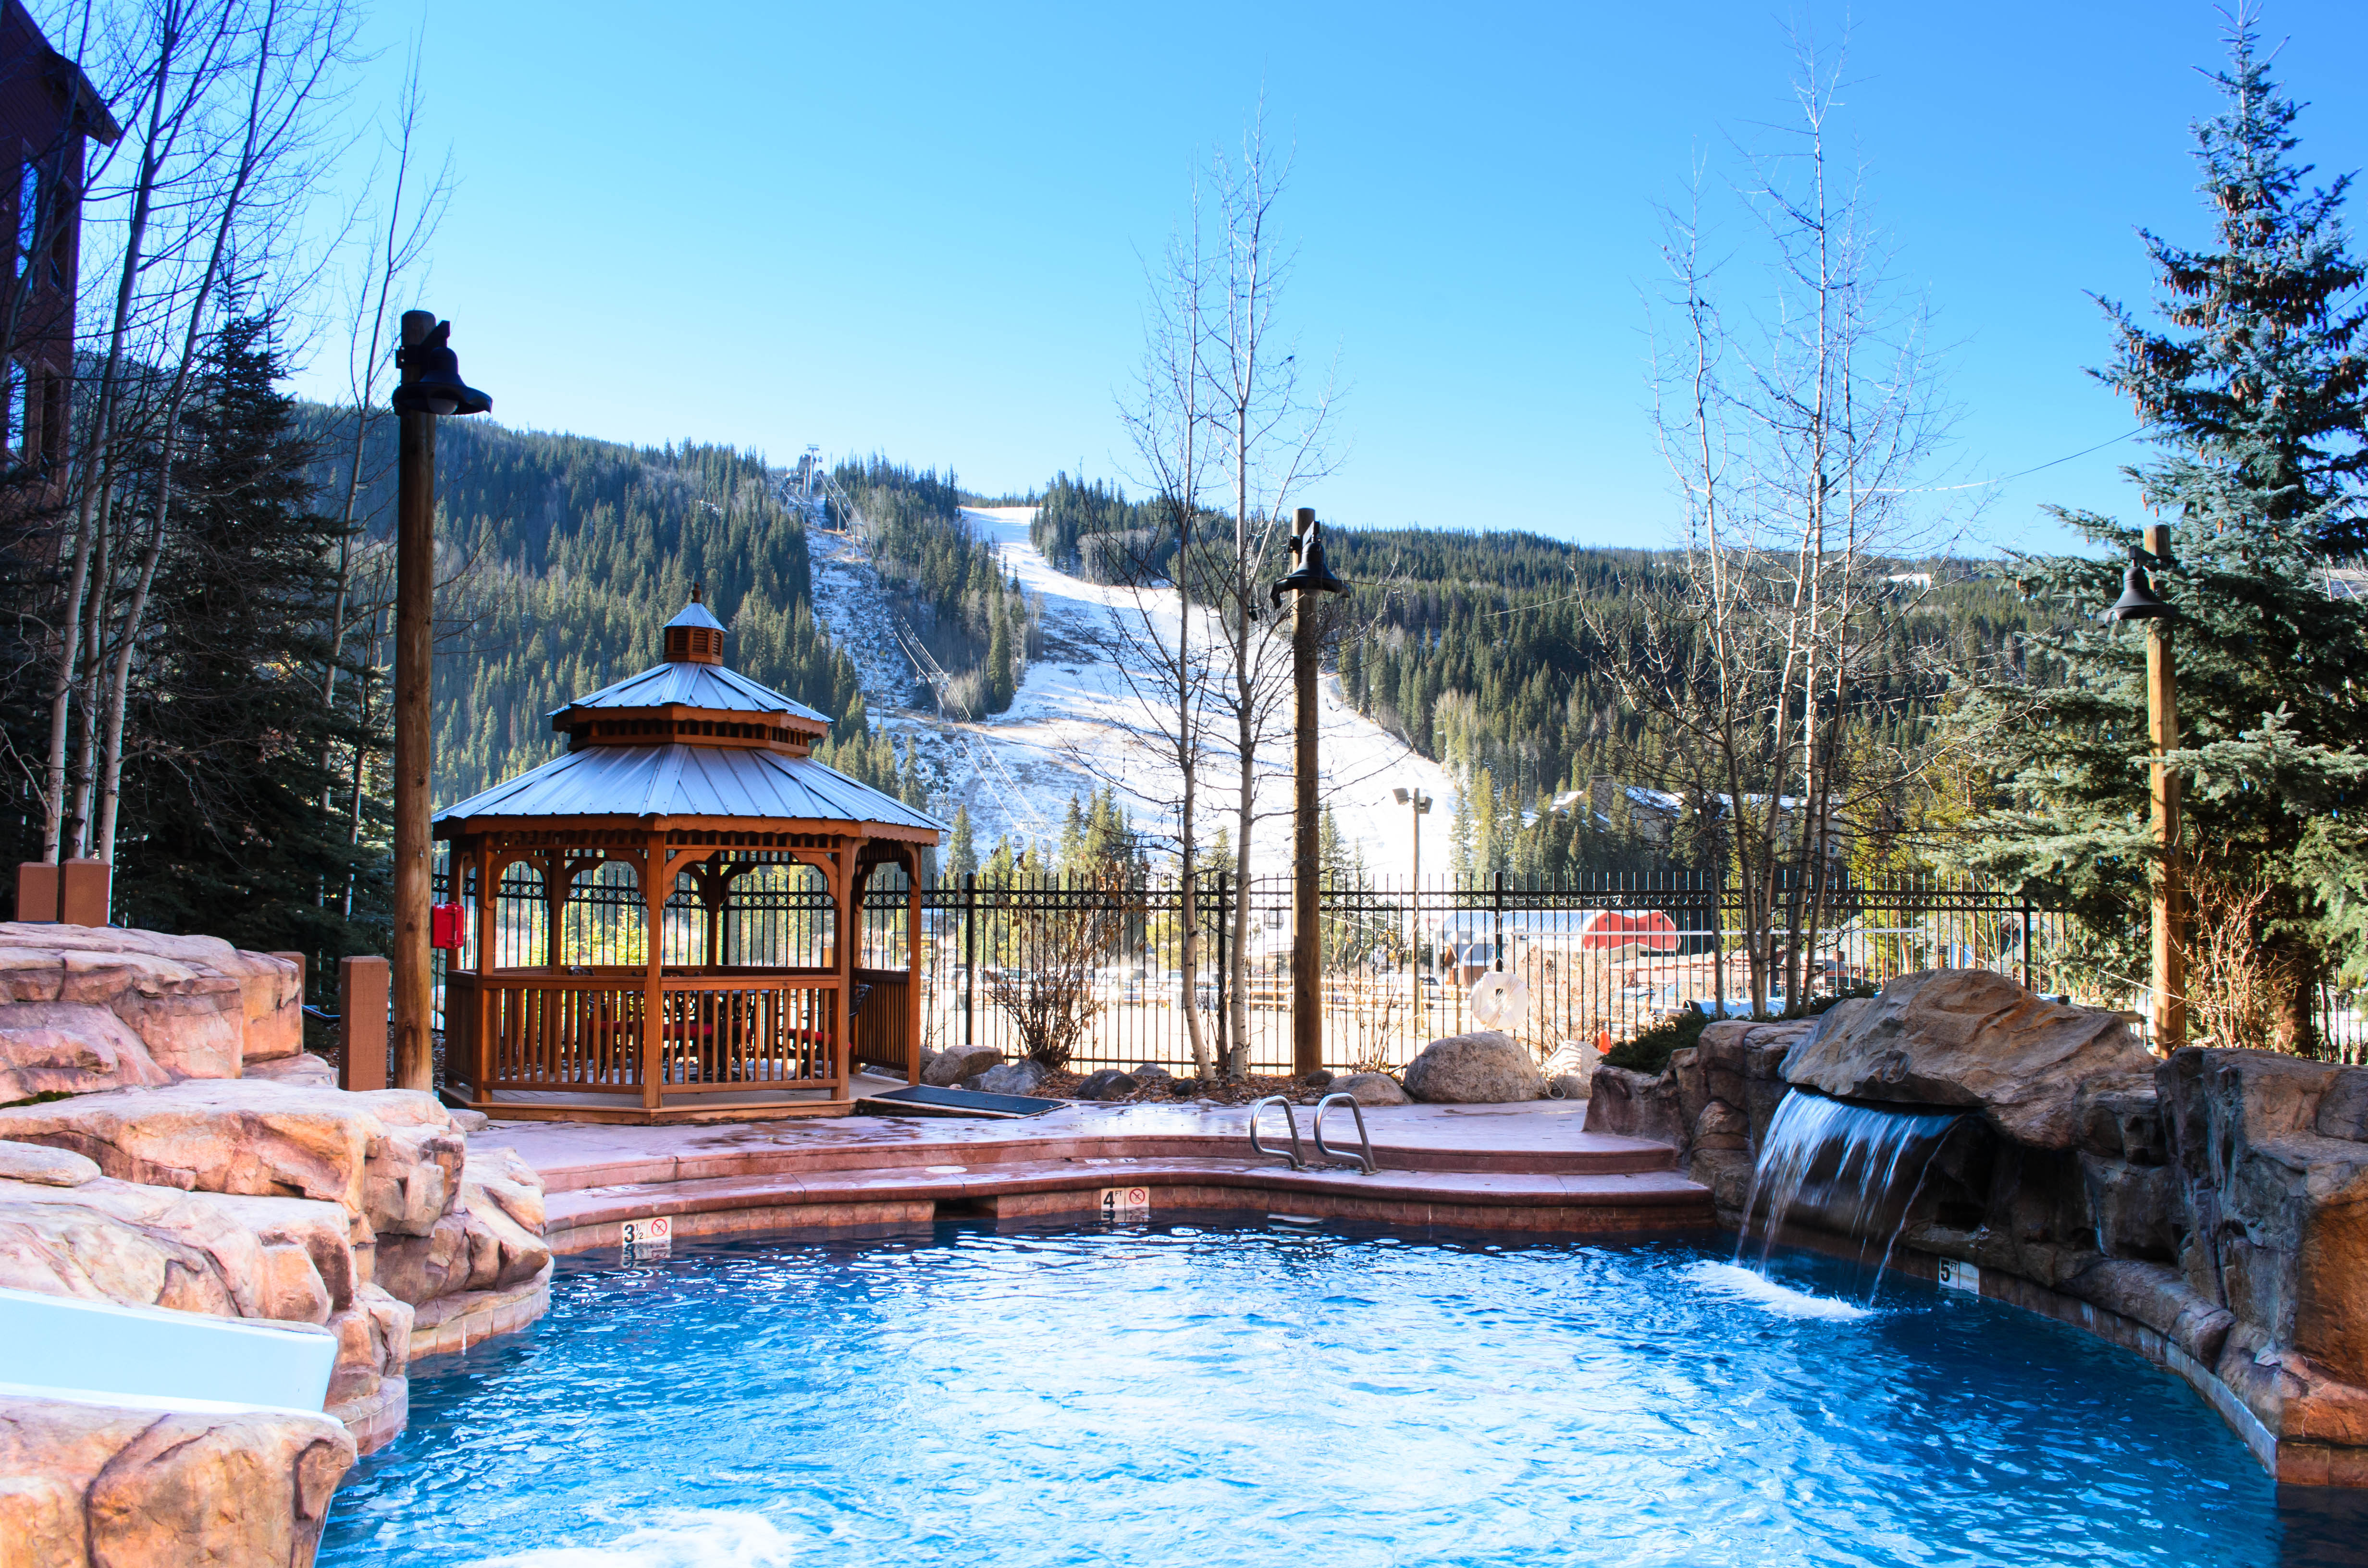 springs-pool-ski-slope-2